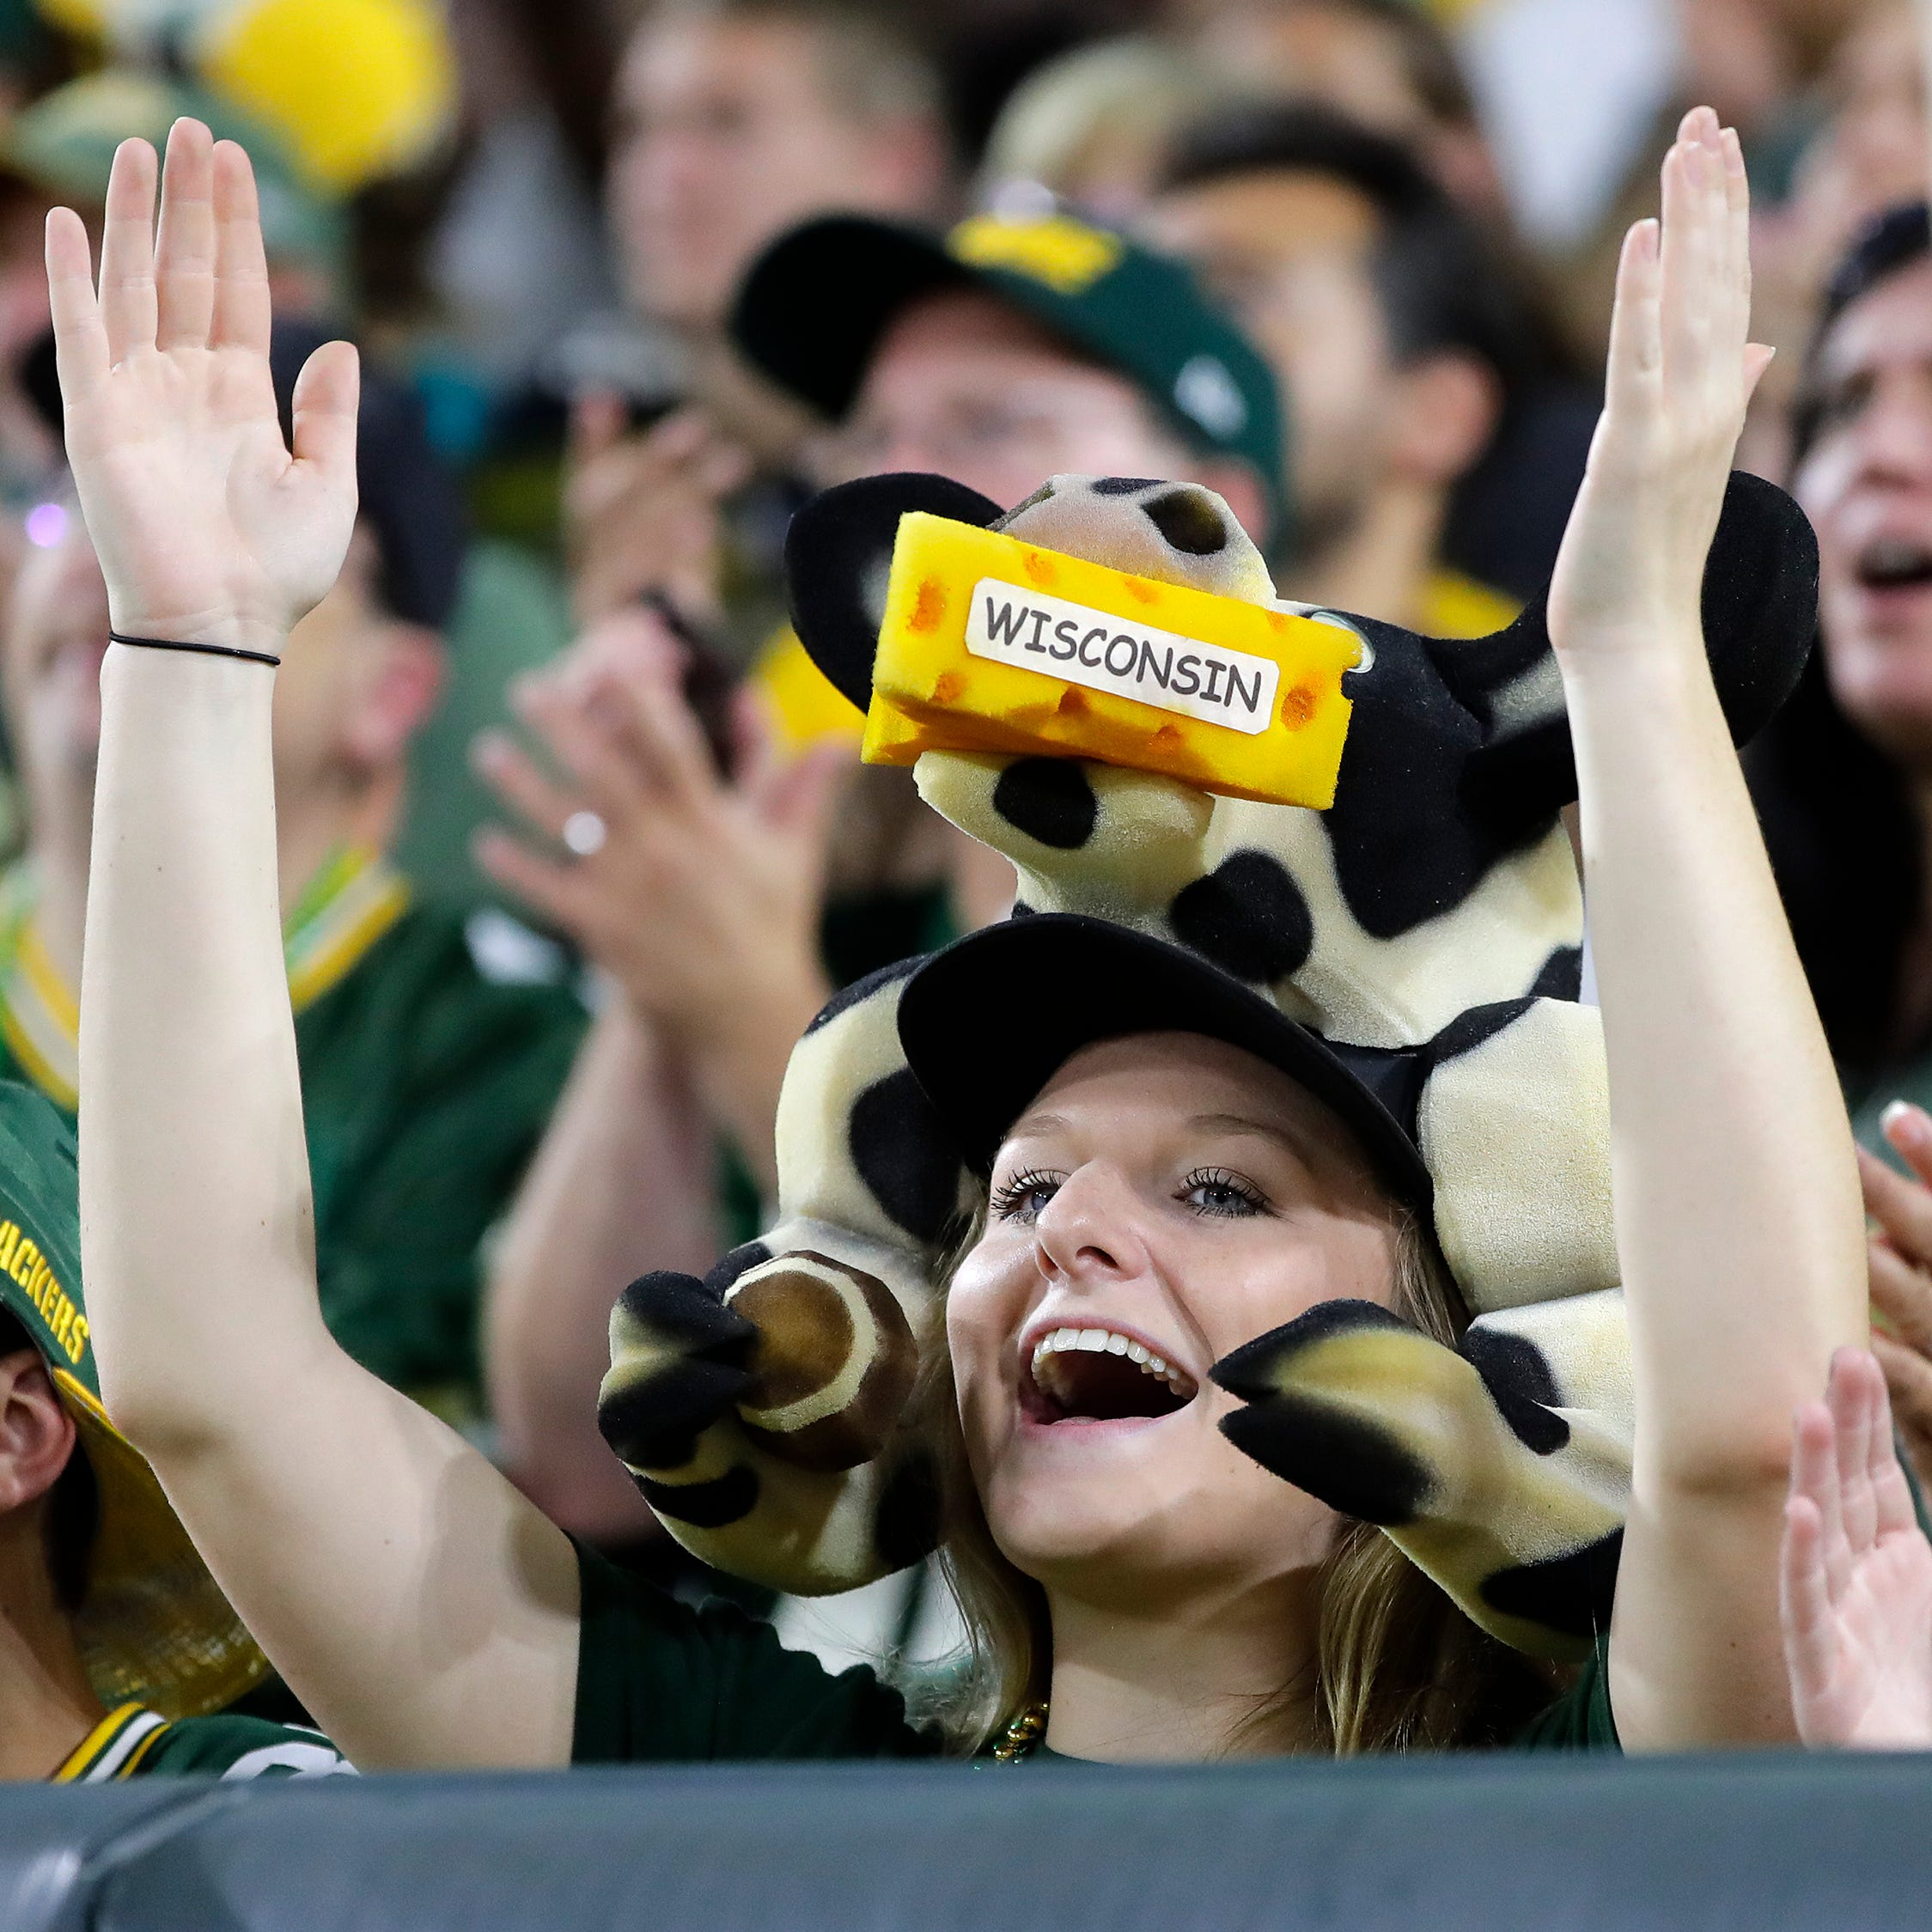 Morning Buzz: How did you become a Packers fan?